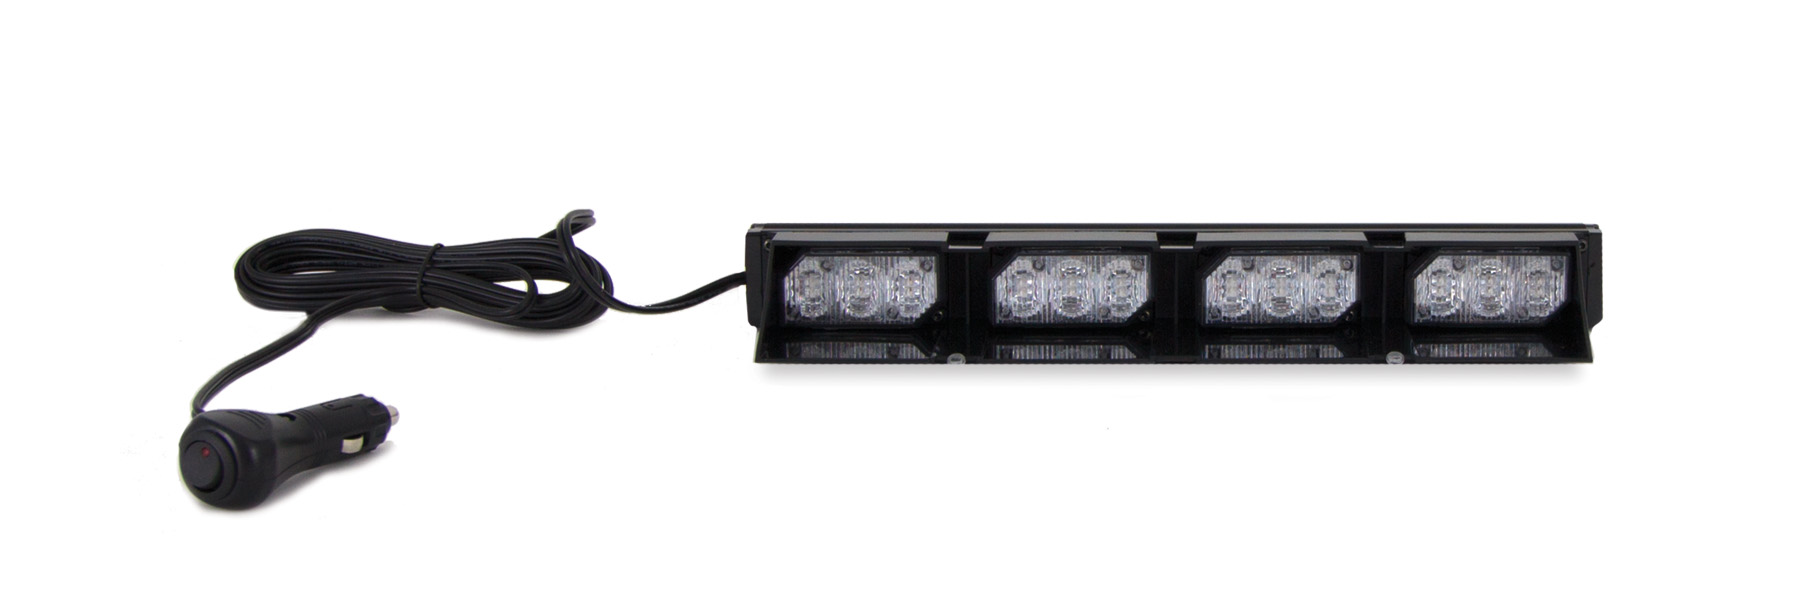 UltraLITE Plus Interior LED Warning Bar Product Image